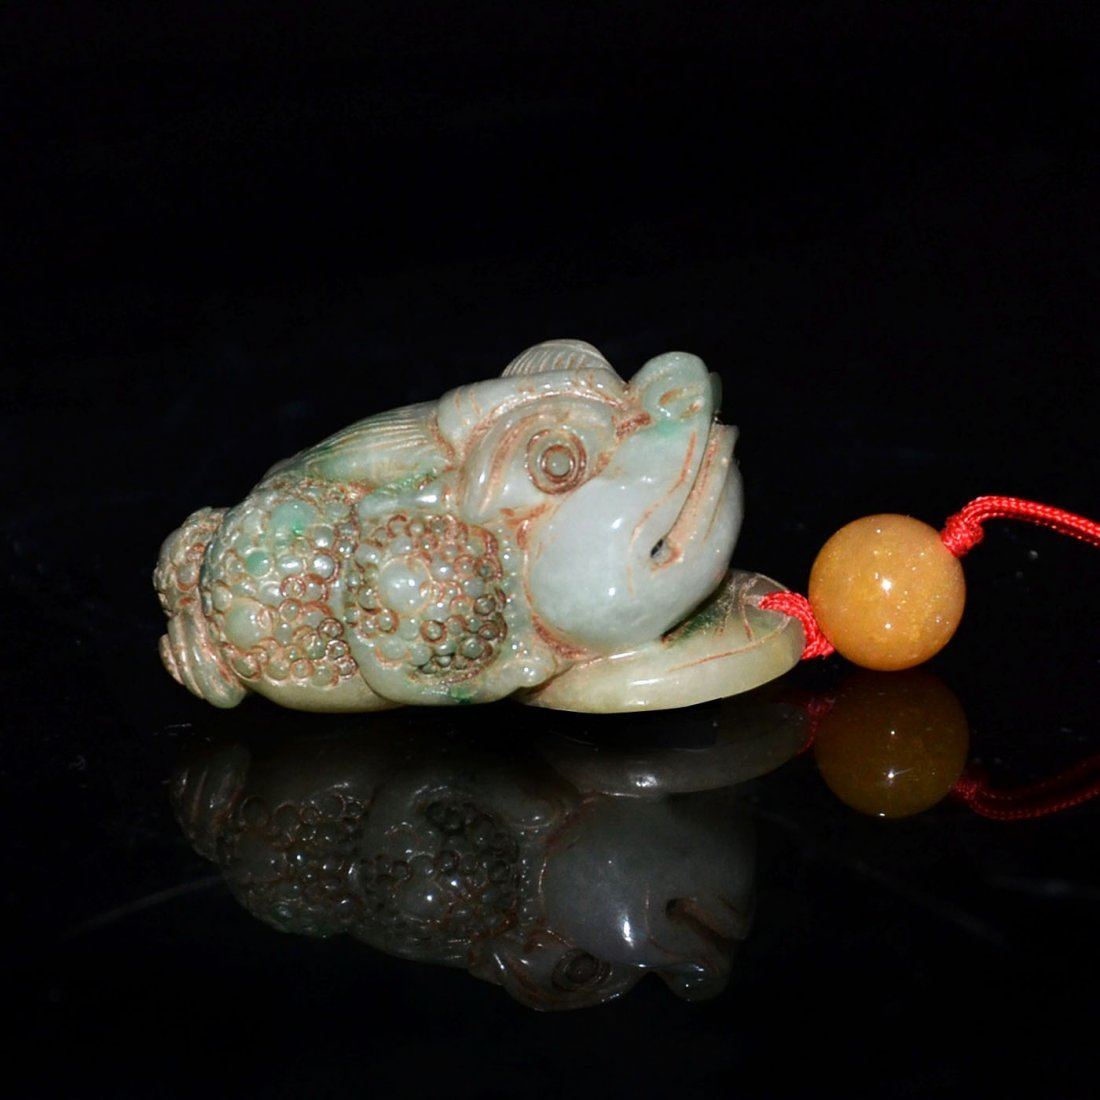 Ming, A Jadeite Carving of Toad with Dragon Head Pebble - 5